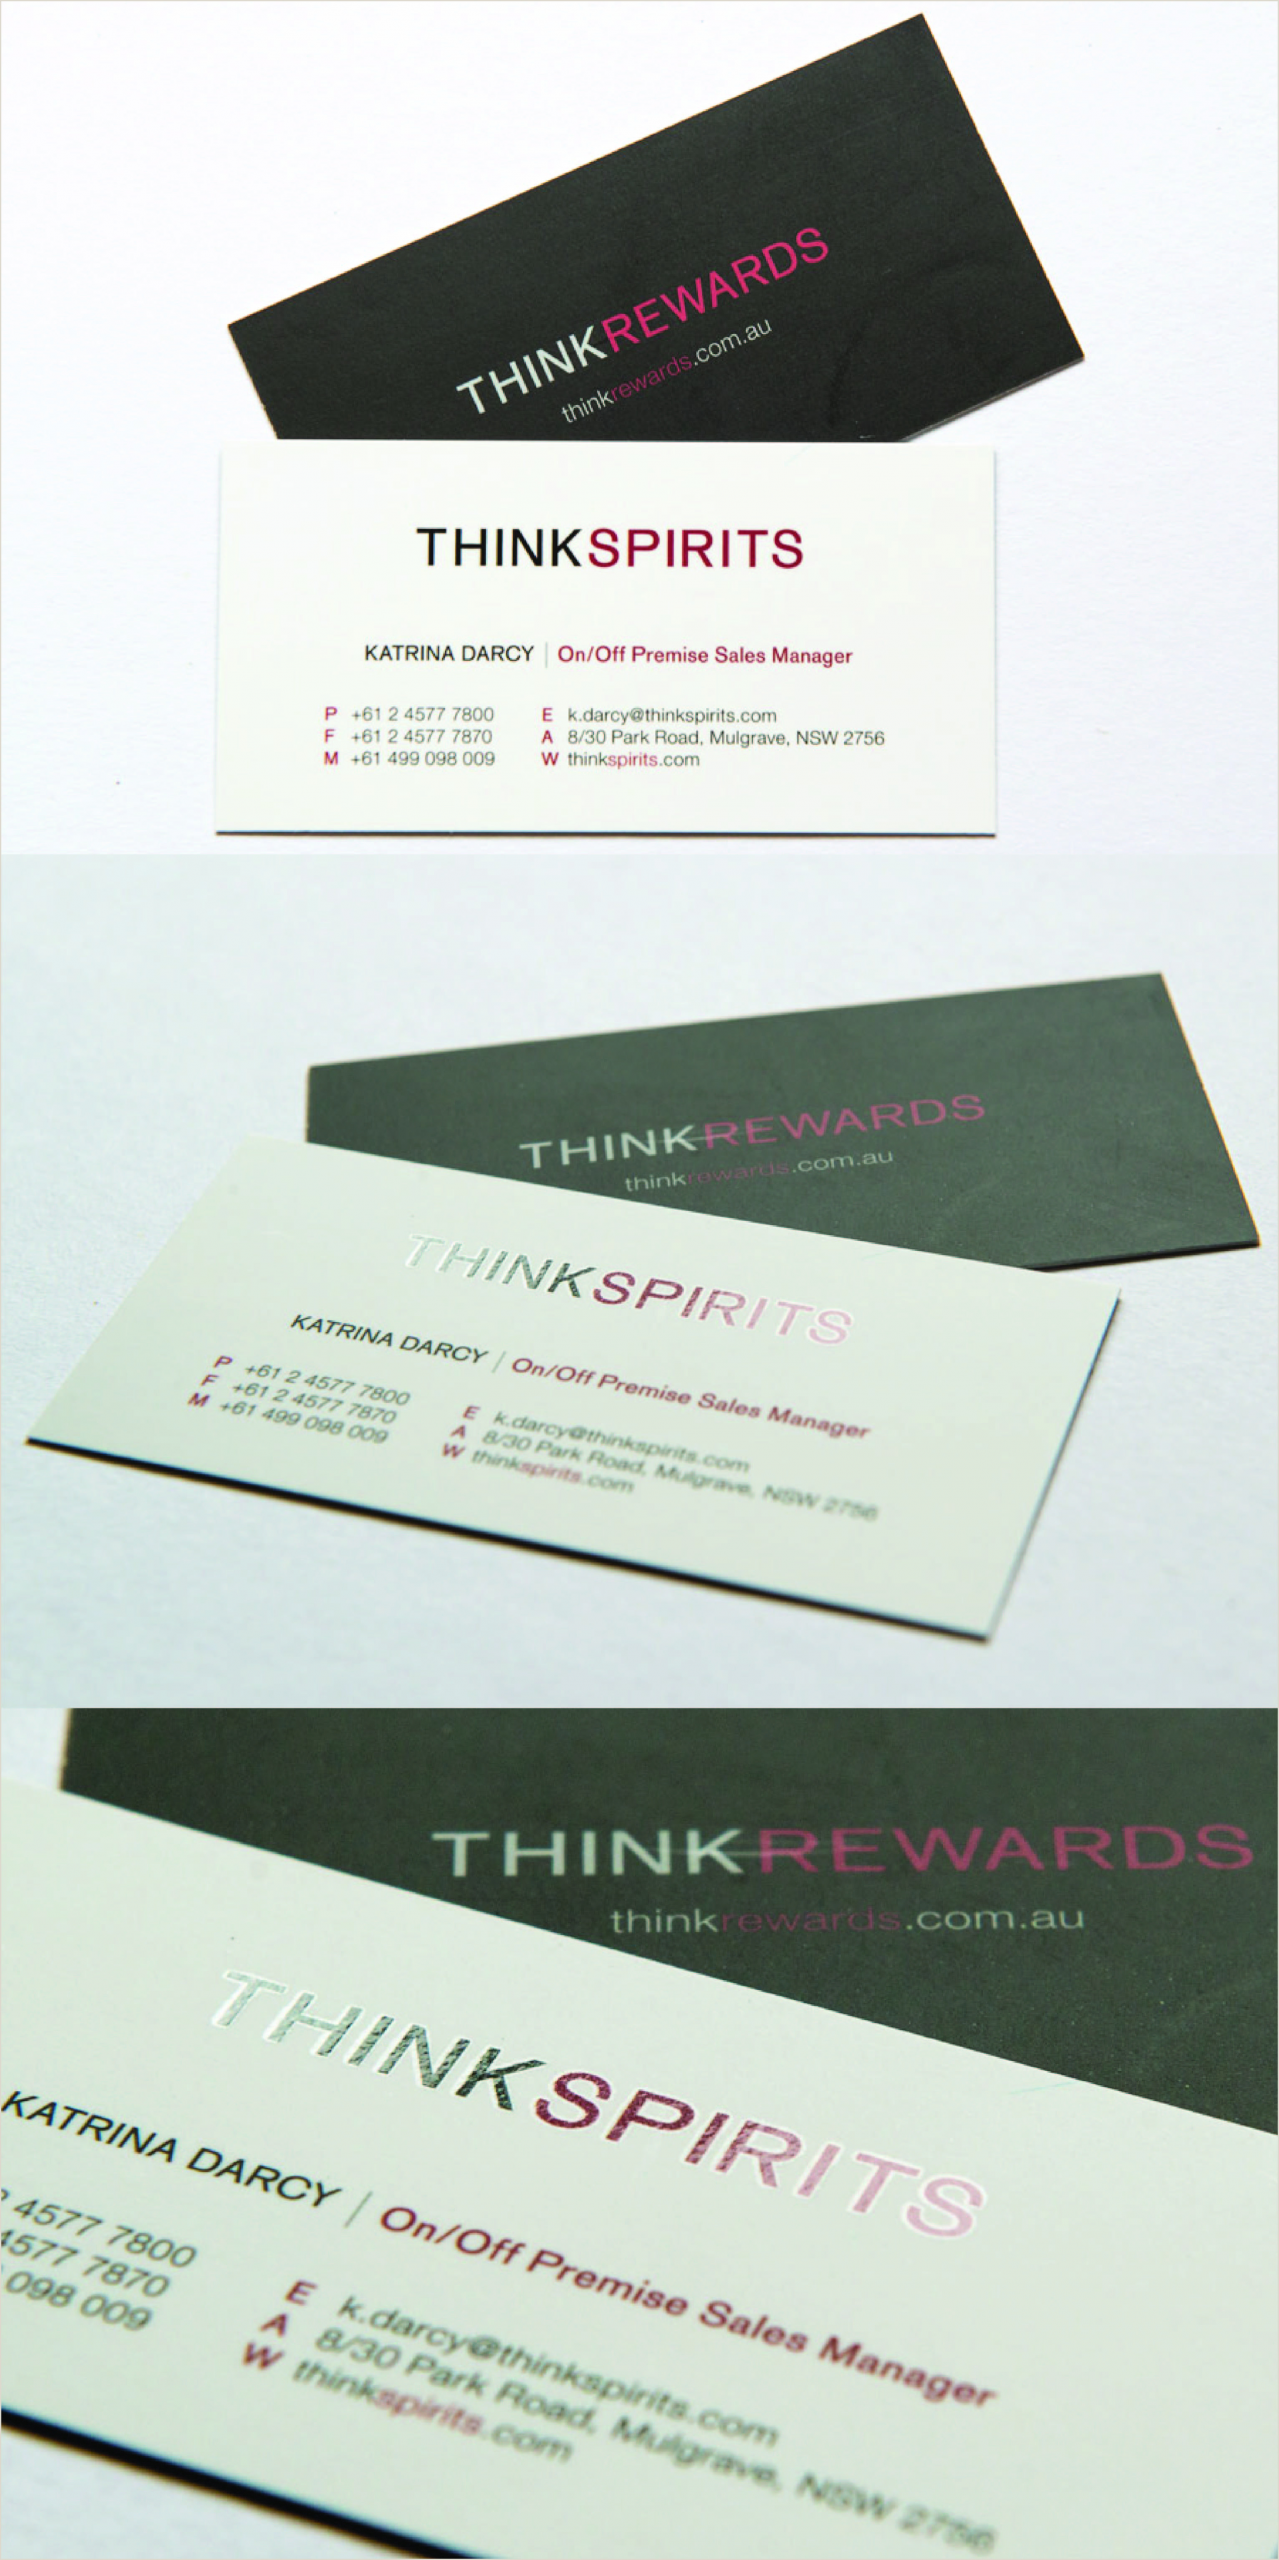 Should I Get Business Cards The Economy Business Cards Are The Standard Choice Out Of